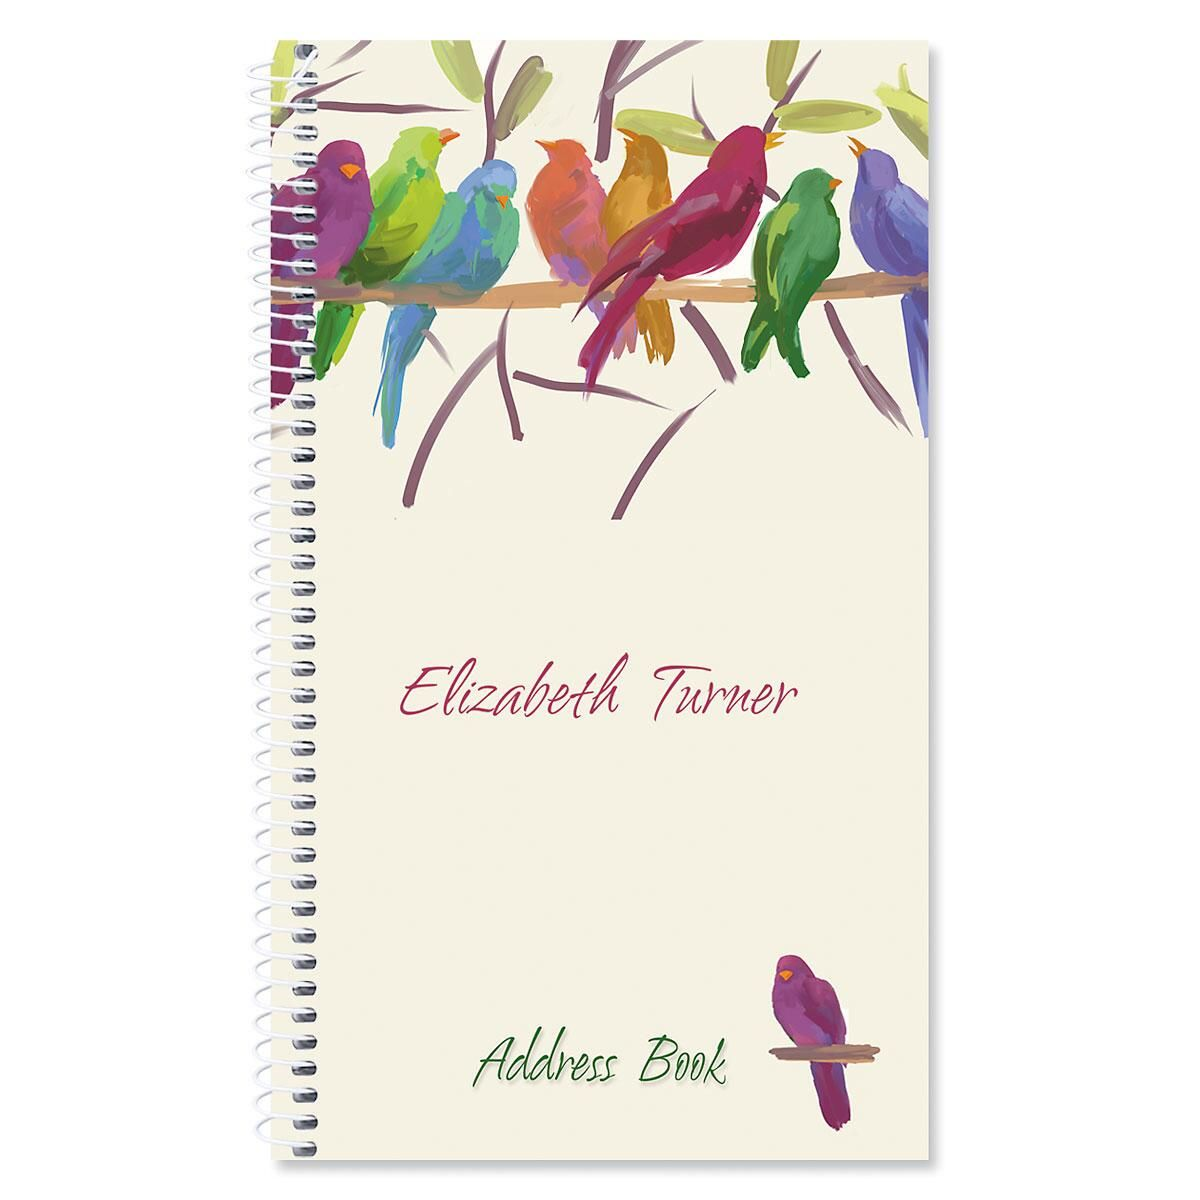 Flocked Together Lifetime Address Book